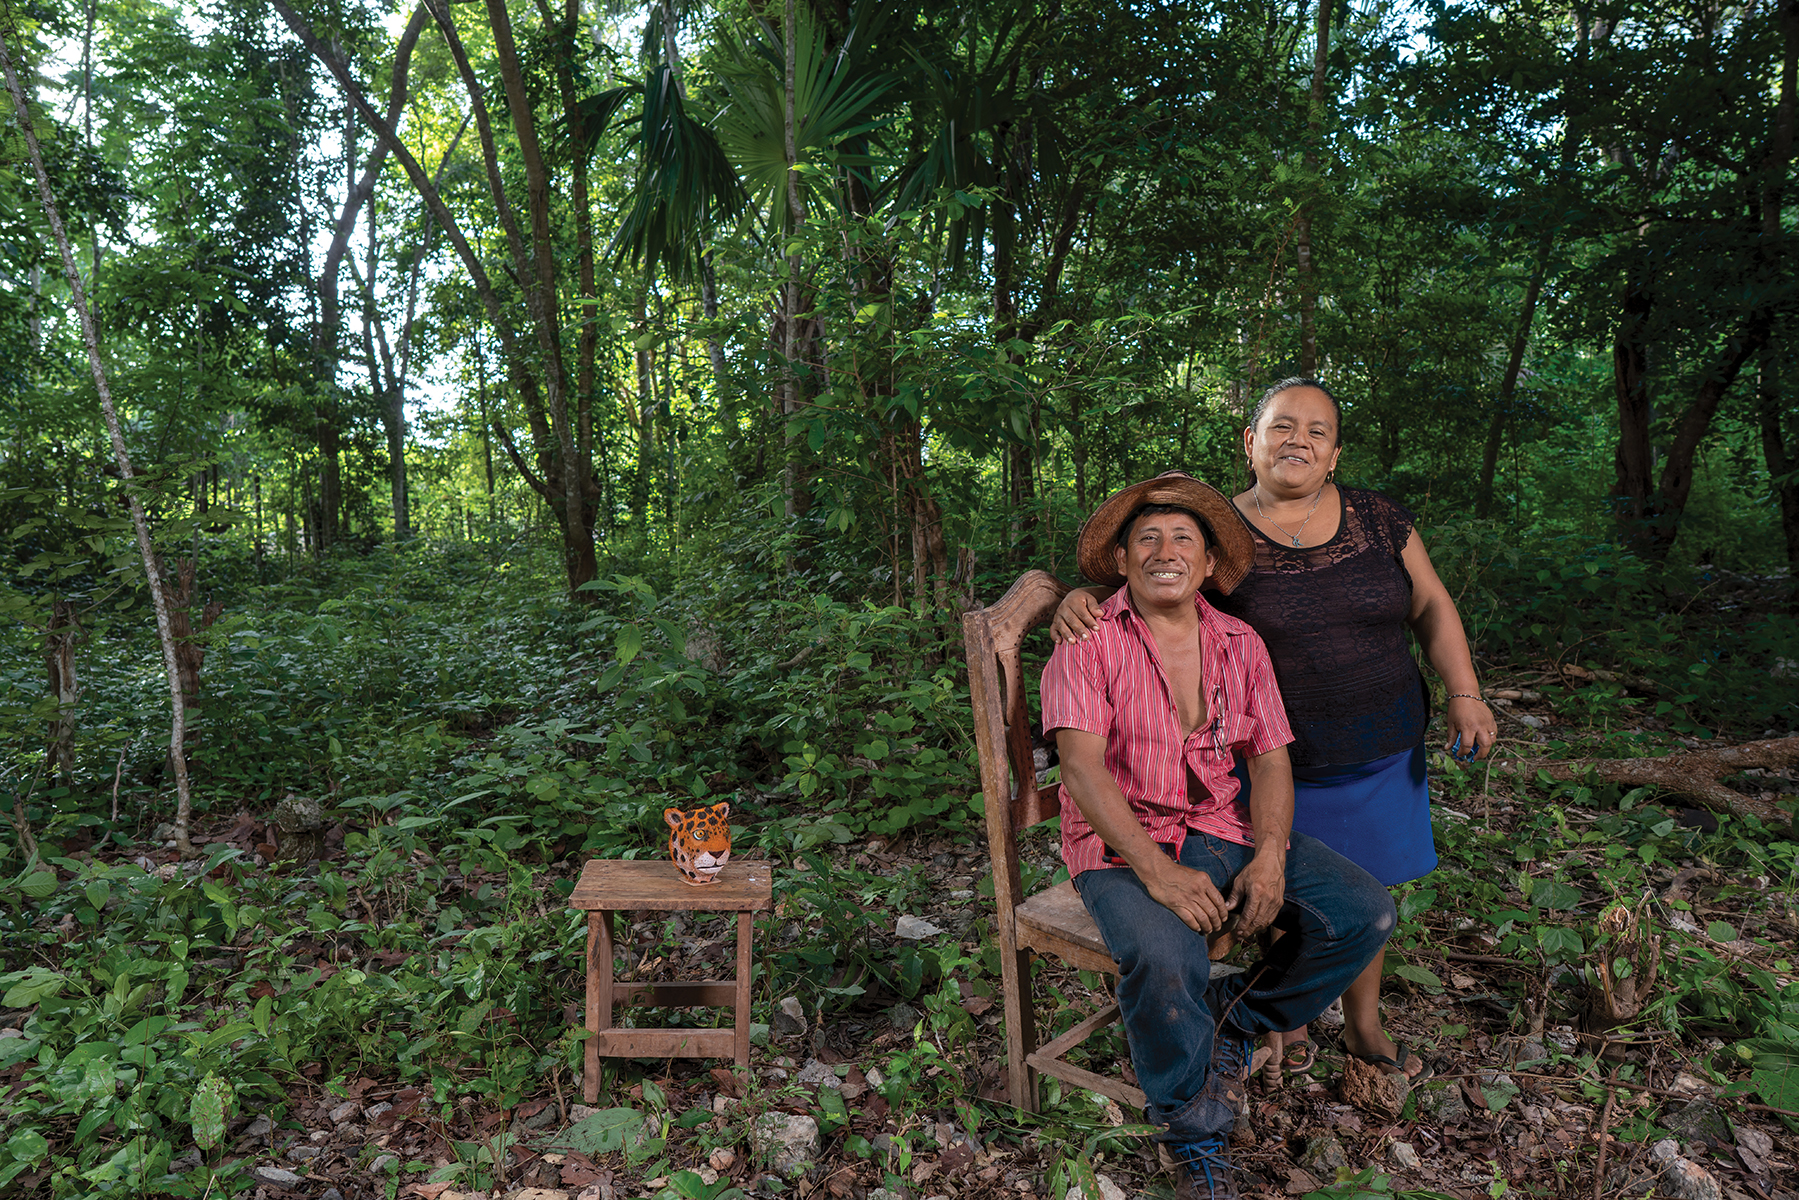 "Miguel Ku Balam (left), from Mexico's Quintana Roo state, cultivates the traditional Mesoamerican milpa system. ""My family name Ku Balam means 'Jaguar God'. I come from the Mayan culture,"" he explains. ""We the Mayans cultivate the milpa for subsistence. We don't do it as a business, but rather as part of our culture — something we inherited from our parents."" (Photo: Peter Lowe/CIMMYT)"